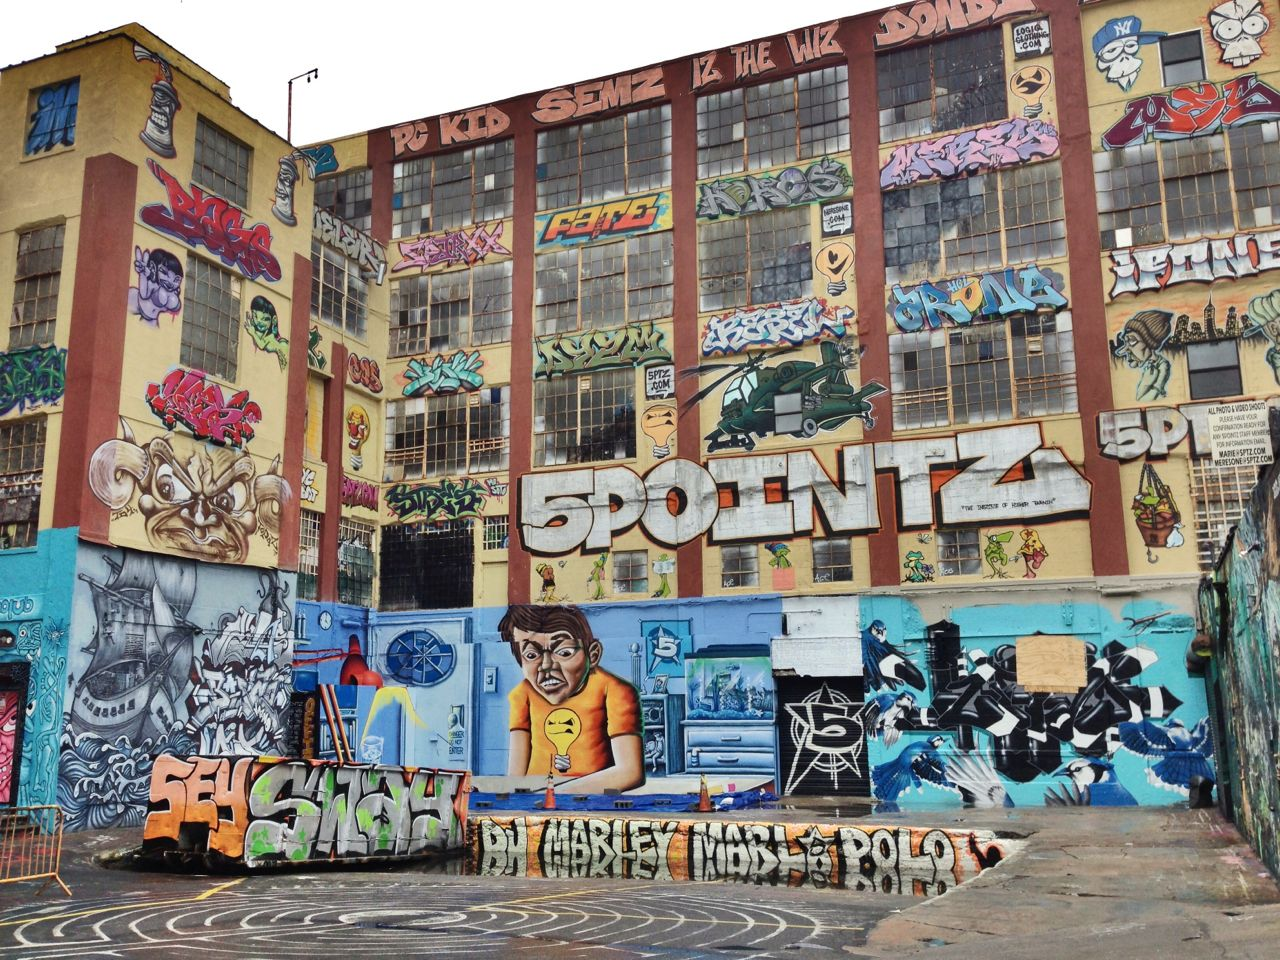 5 points queens new york influential space for artists landmark for the city cultureclub - Callejero manhattan ...